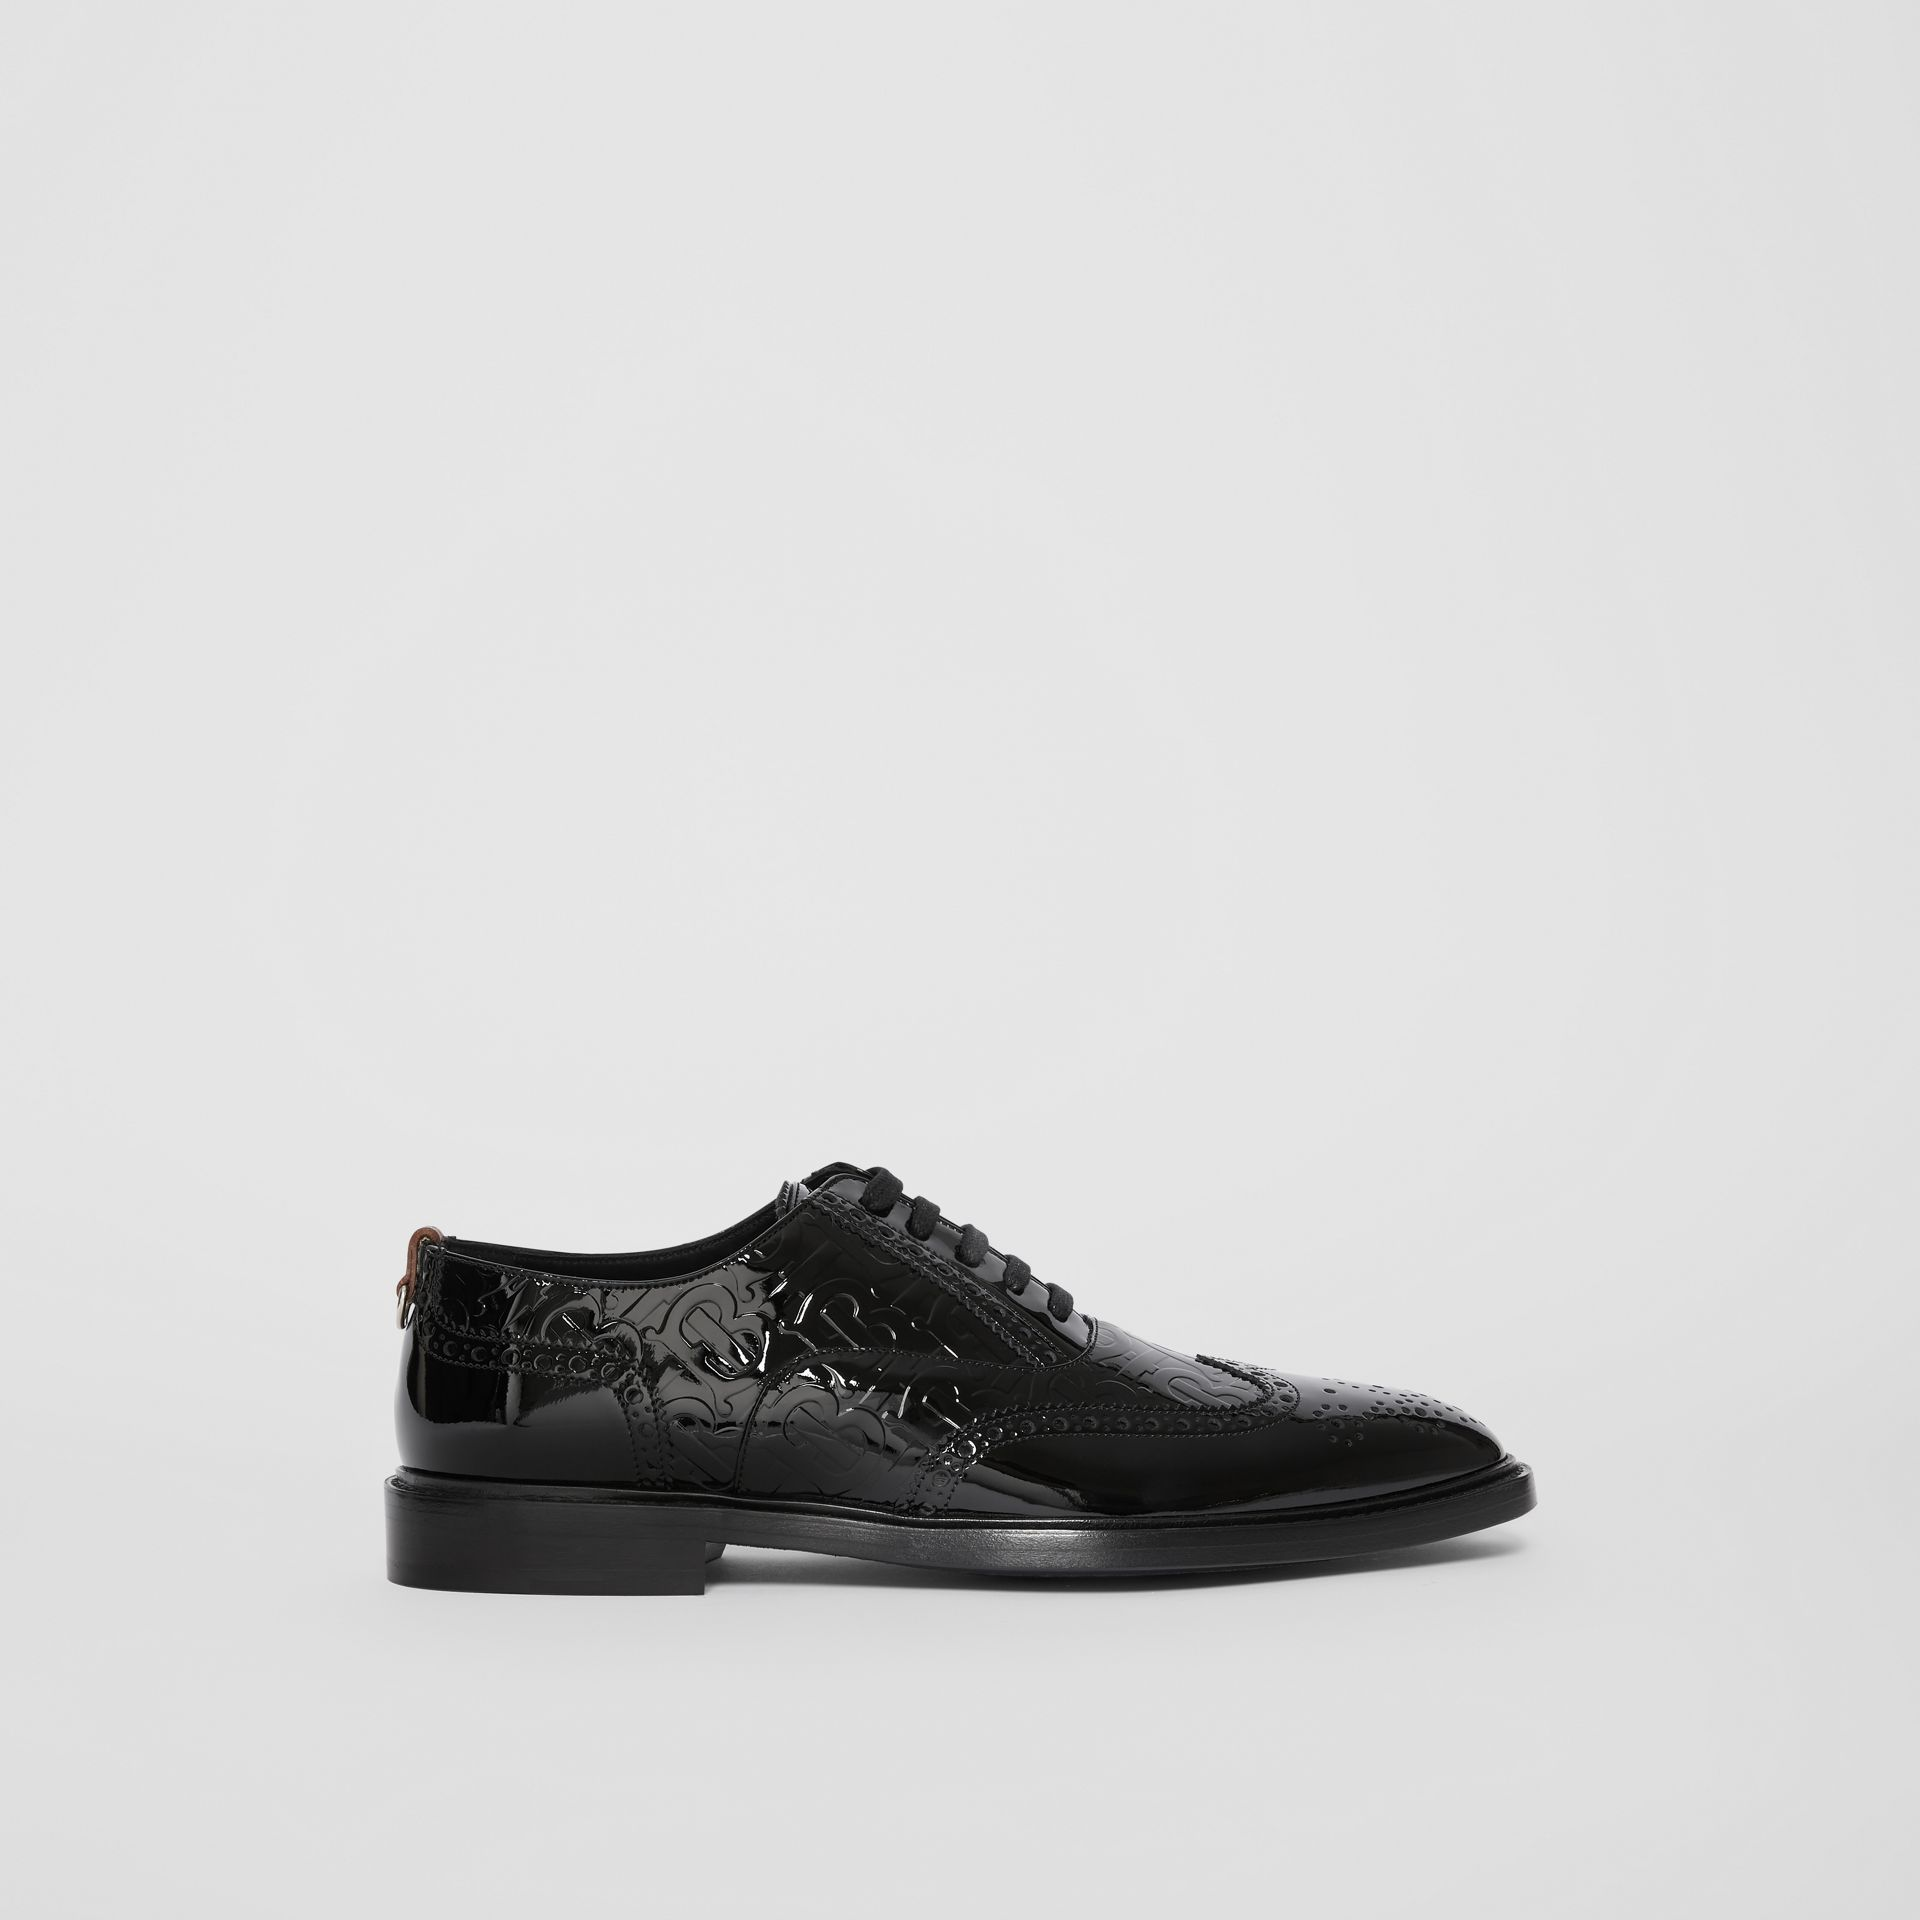 D-ring Detail Monogram Patent Leather Brogues in Black - Men | Burberry - gallery image 5